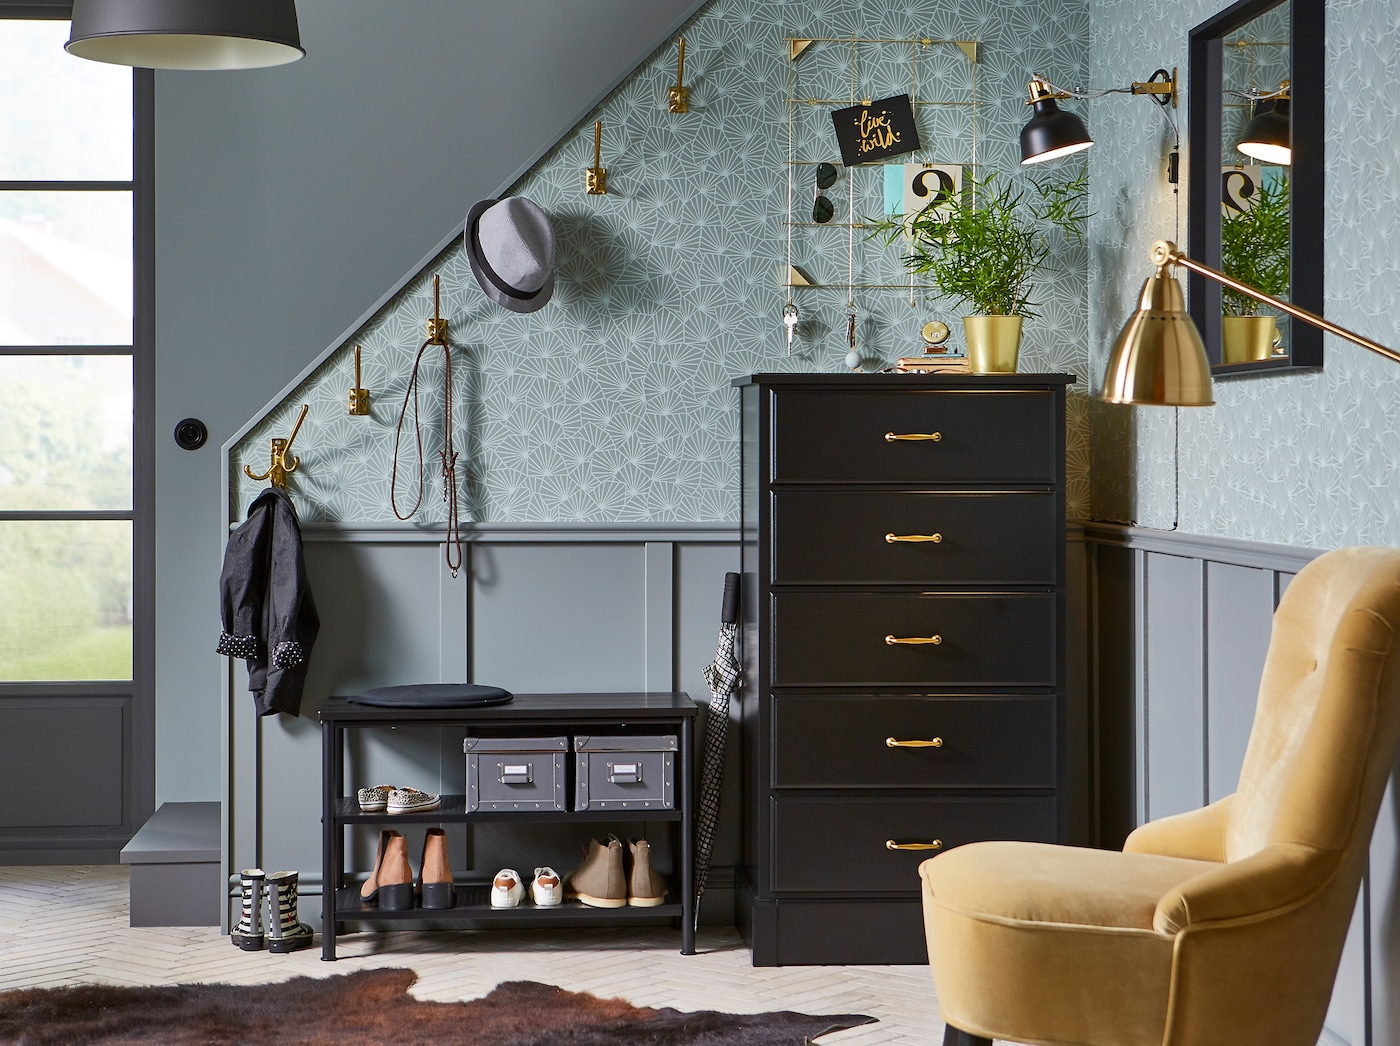 Copper-coloured KÄMPIG hooks and storage space for shoes, hats, jackets and smaller accessories such as makeup and keys. The wallpaper and panelling create a cosy atmosphere.